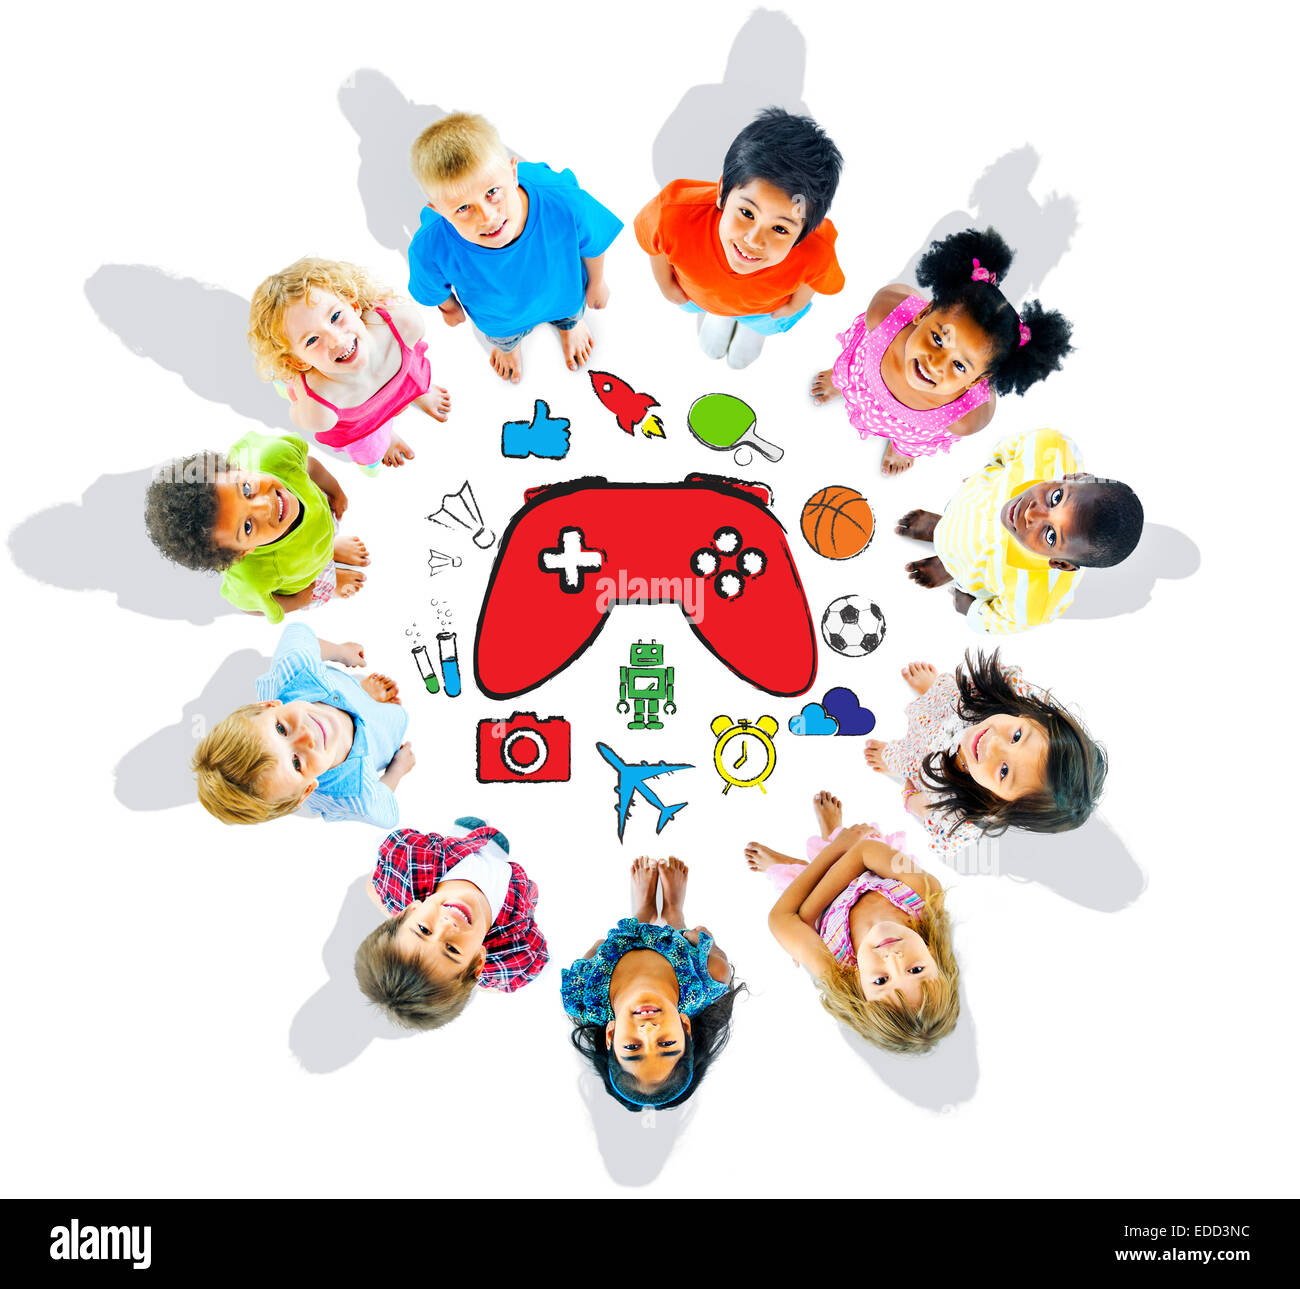 Group of Children and Play Concept - Stock Image